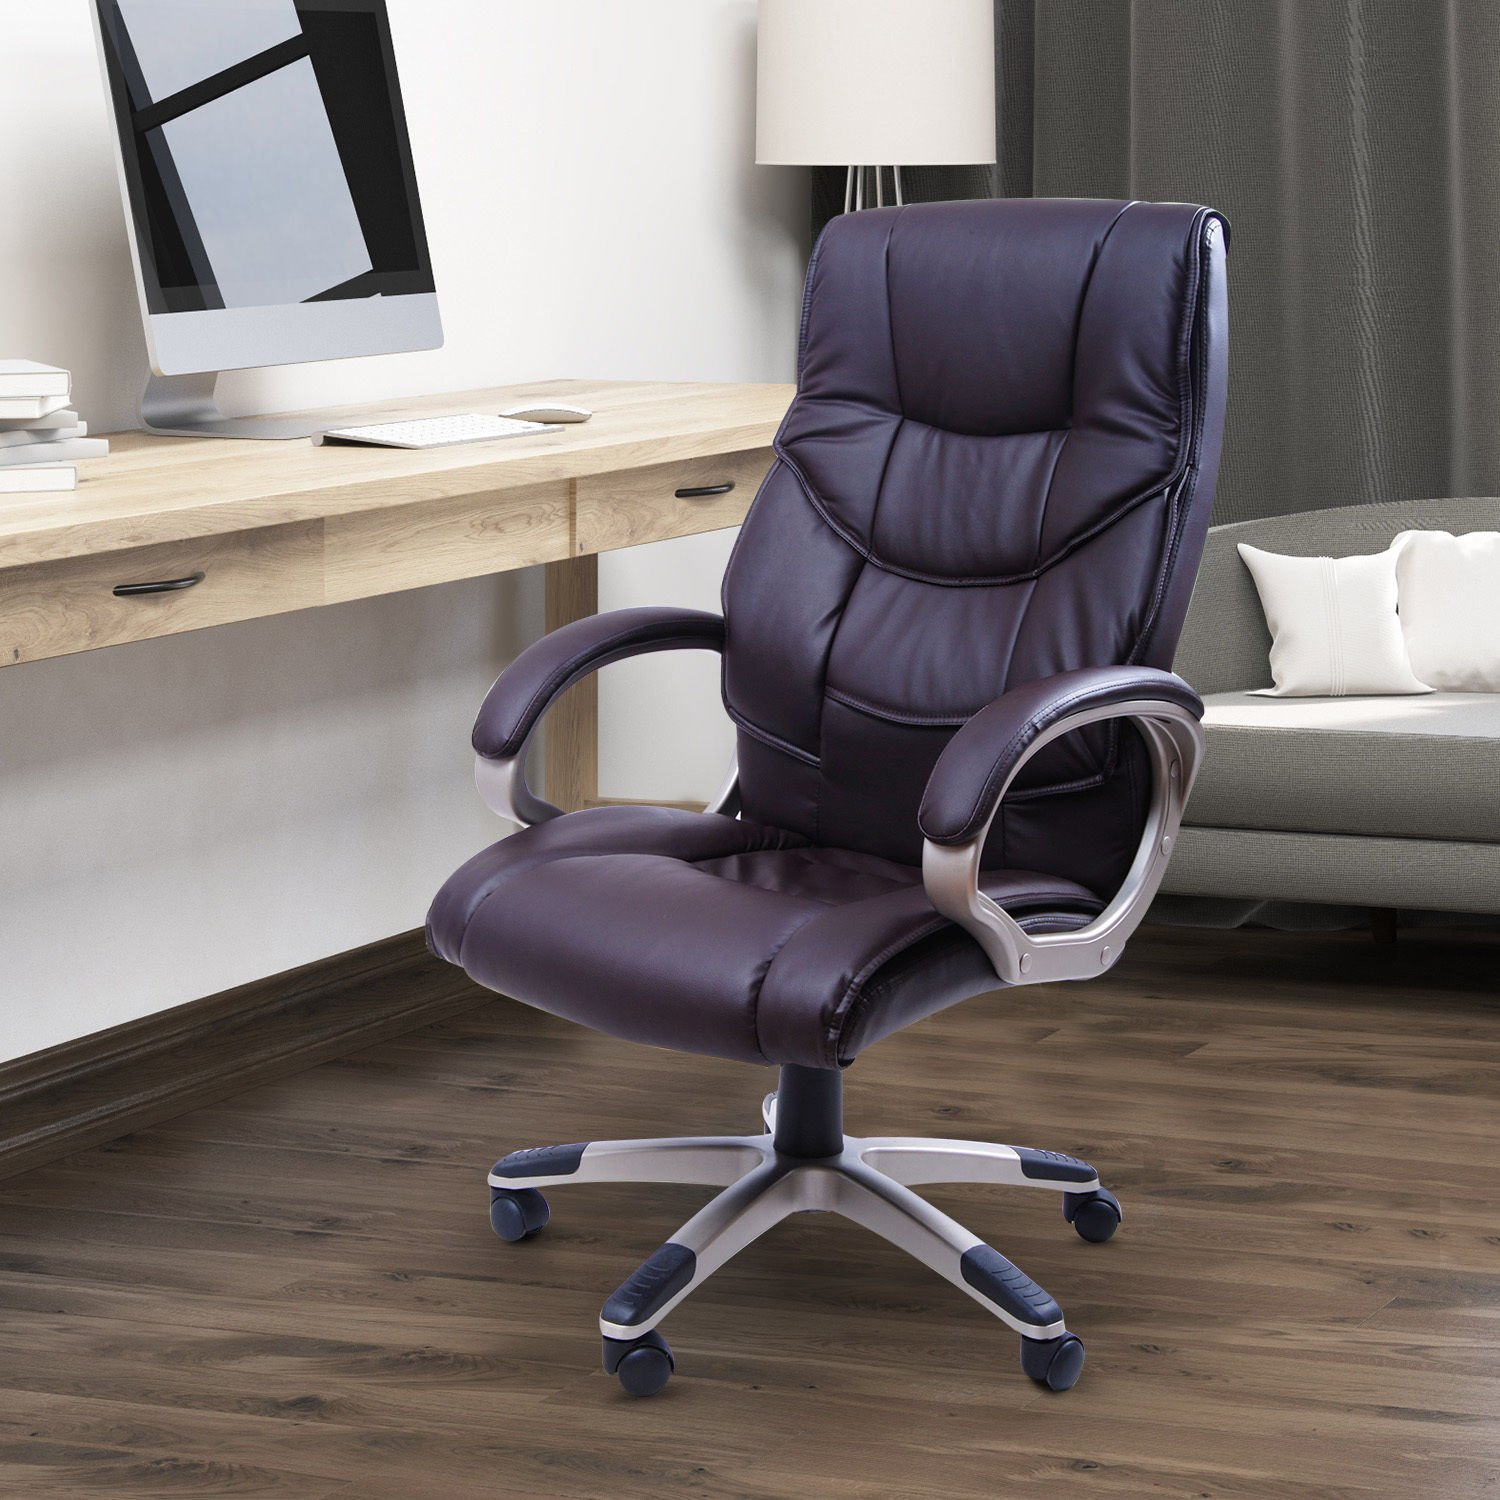 Homcom Computer Office Swivel Chair Desk Chair High Back PU Leather Adjustable Sold By MHSTAR 5550-3301